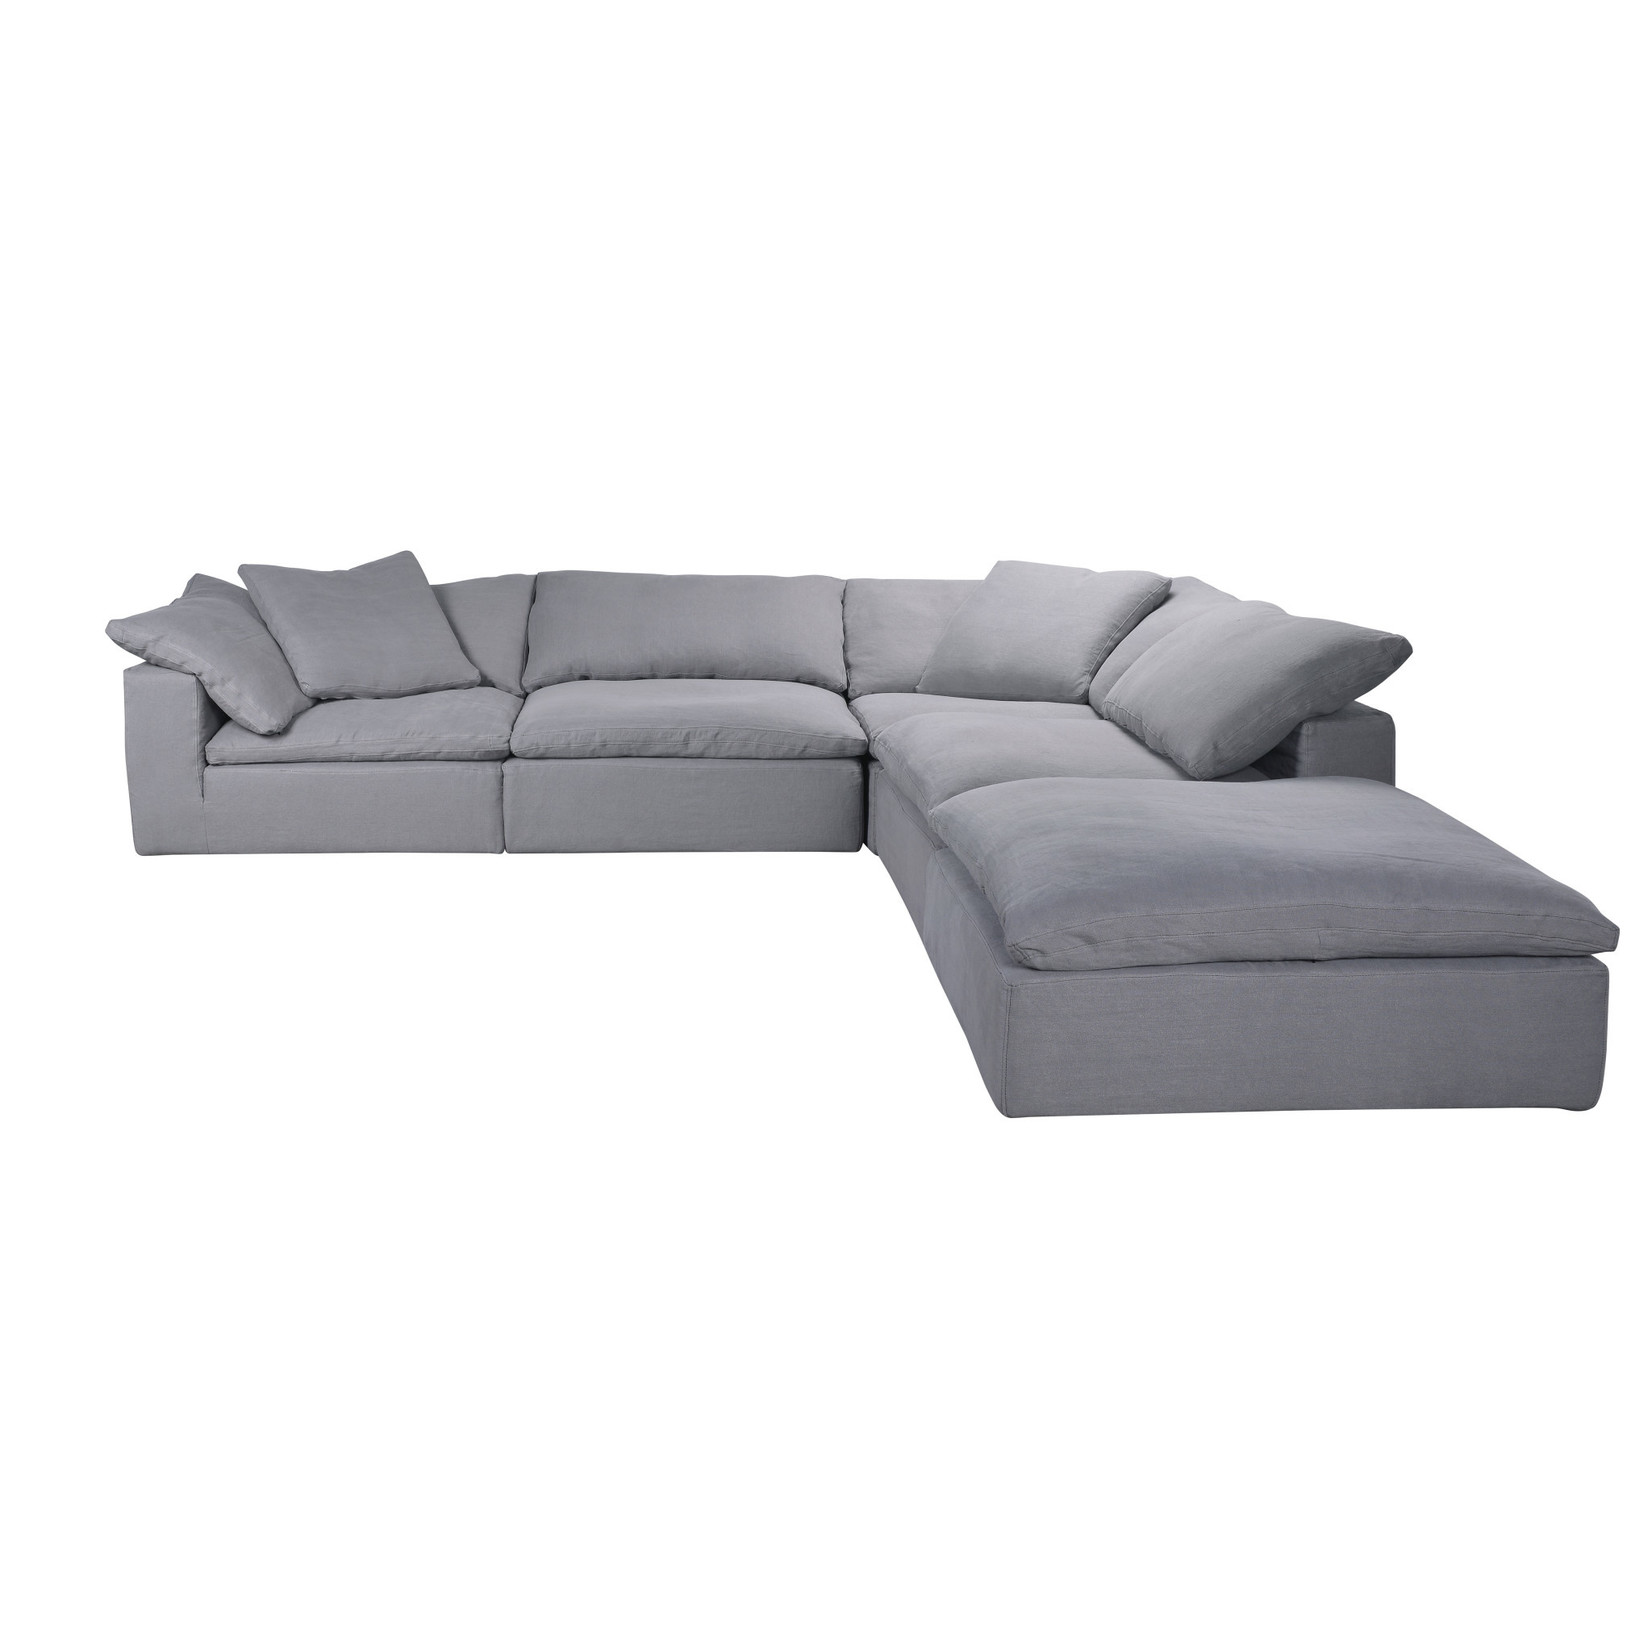 TIMOTHY OULTON SECTIONAL CLOUD SMALL  1 SEATER-GALATA LINEN GREY